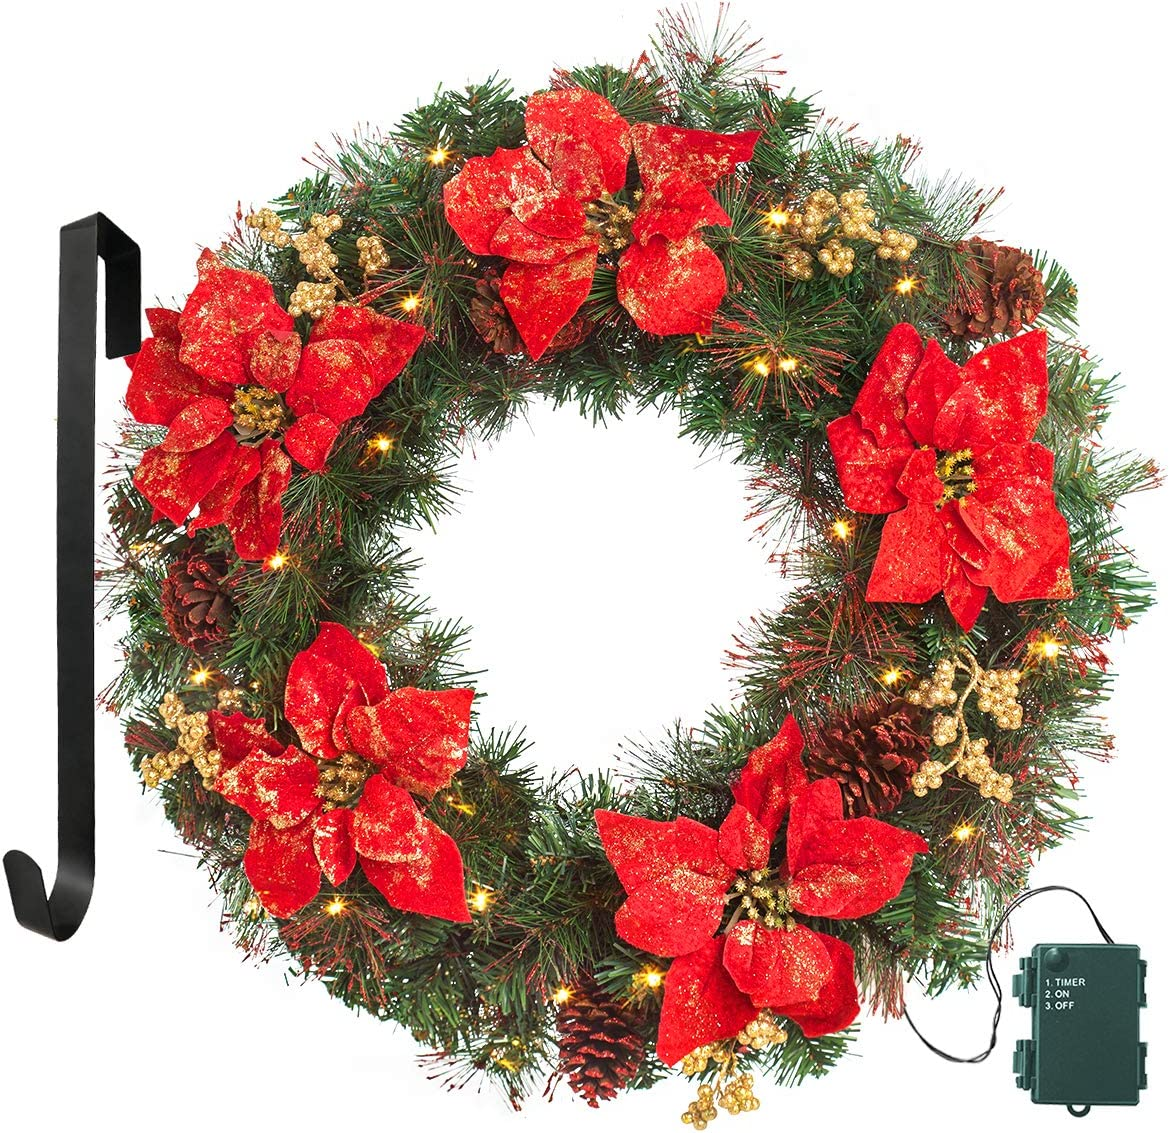 Lifefair Prelit Christmas Wreath 24 Artificial Christmas Wreath Flocked With Mixed Decorations And 50 Battery Operated Led Lights Home Kitchen Kolenik Seasonal Décor